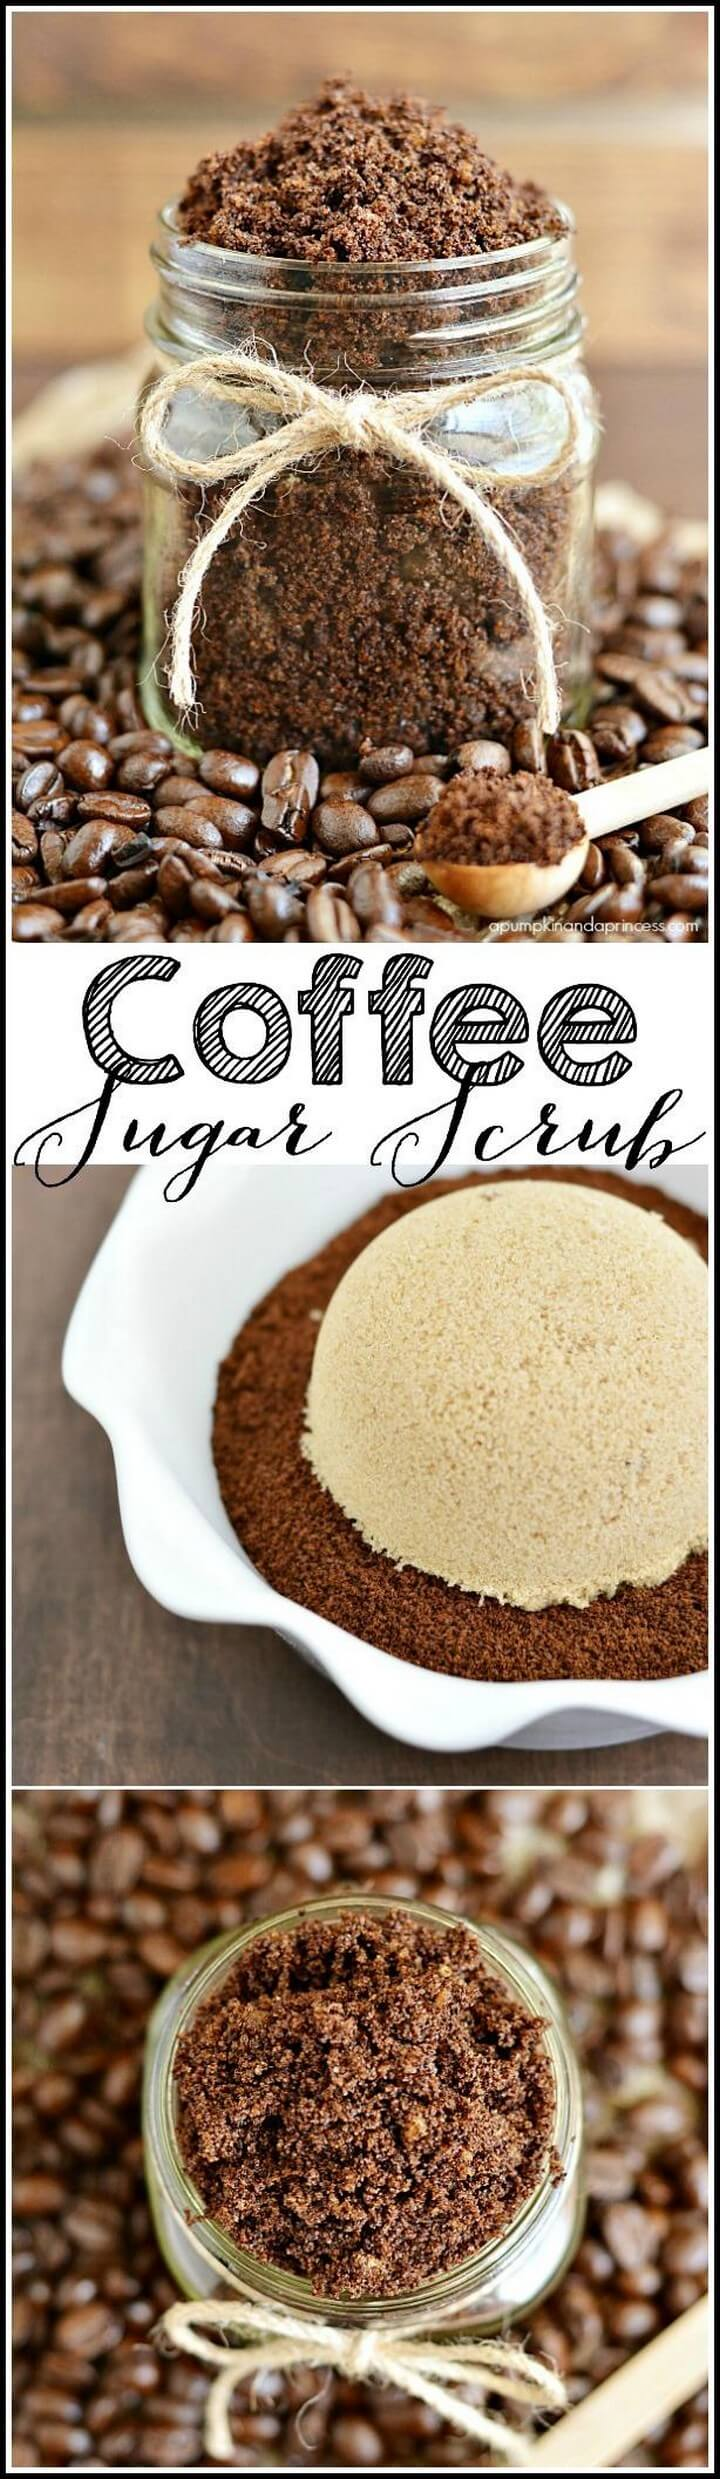 DIY Coffee Mason Jar Sugar Scrub Gift